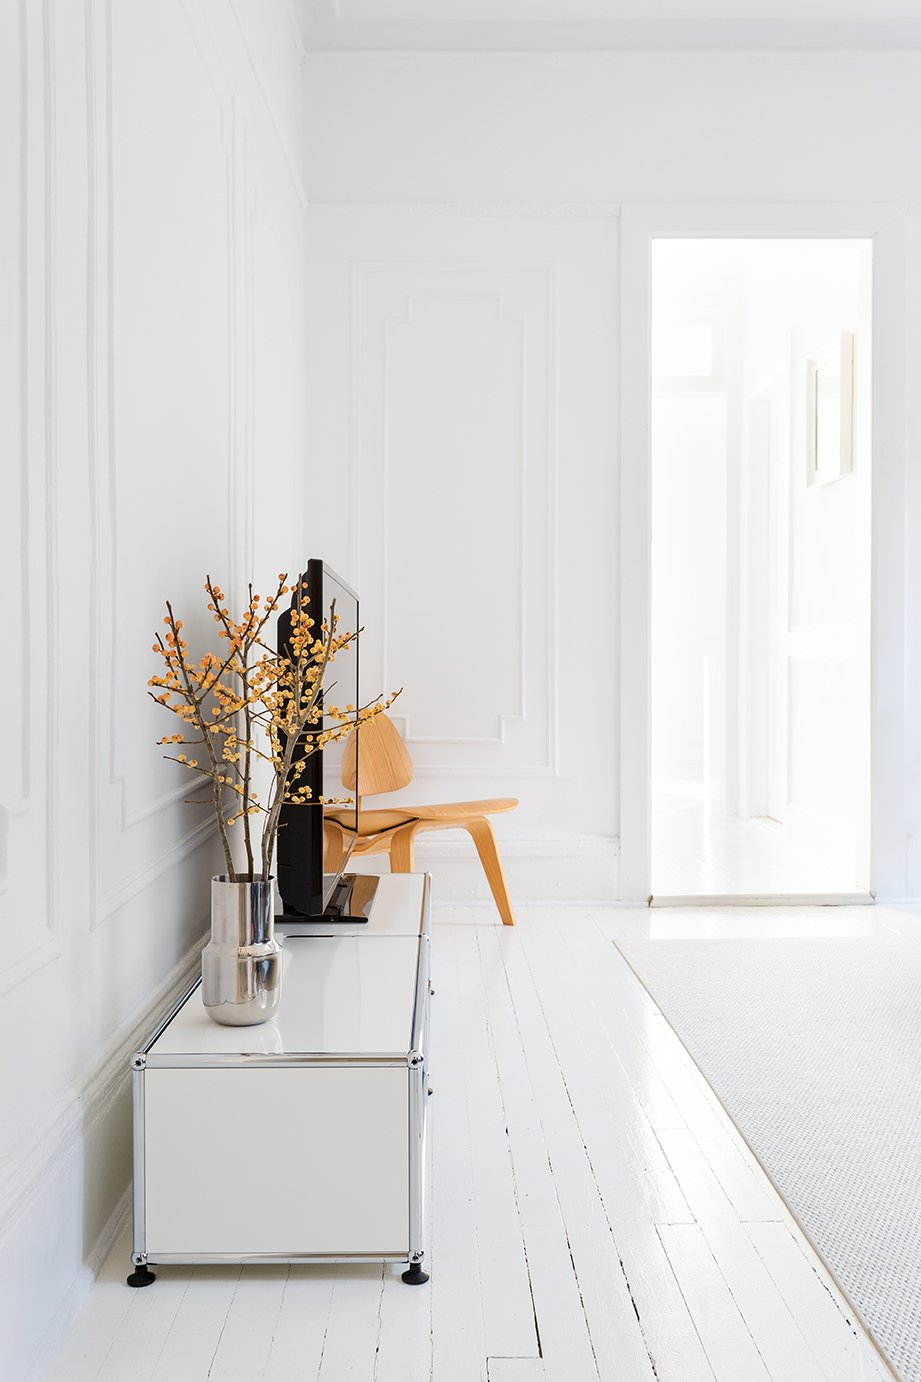 """""""When everything is painted white, you can really feel the spatial flow and the sectional geometry, which is interesting because it goes from being a rectangle to a square."""" Ed Parker, designer and resident"""